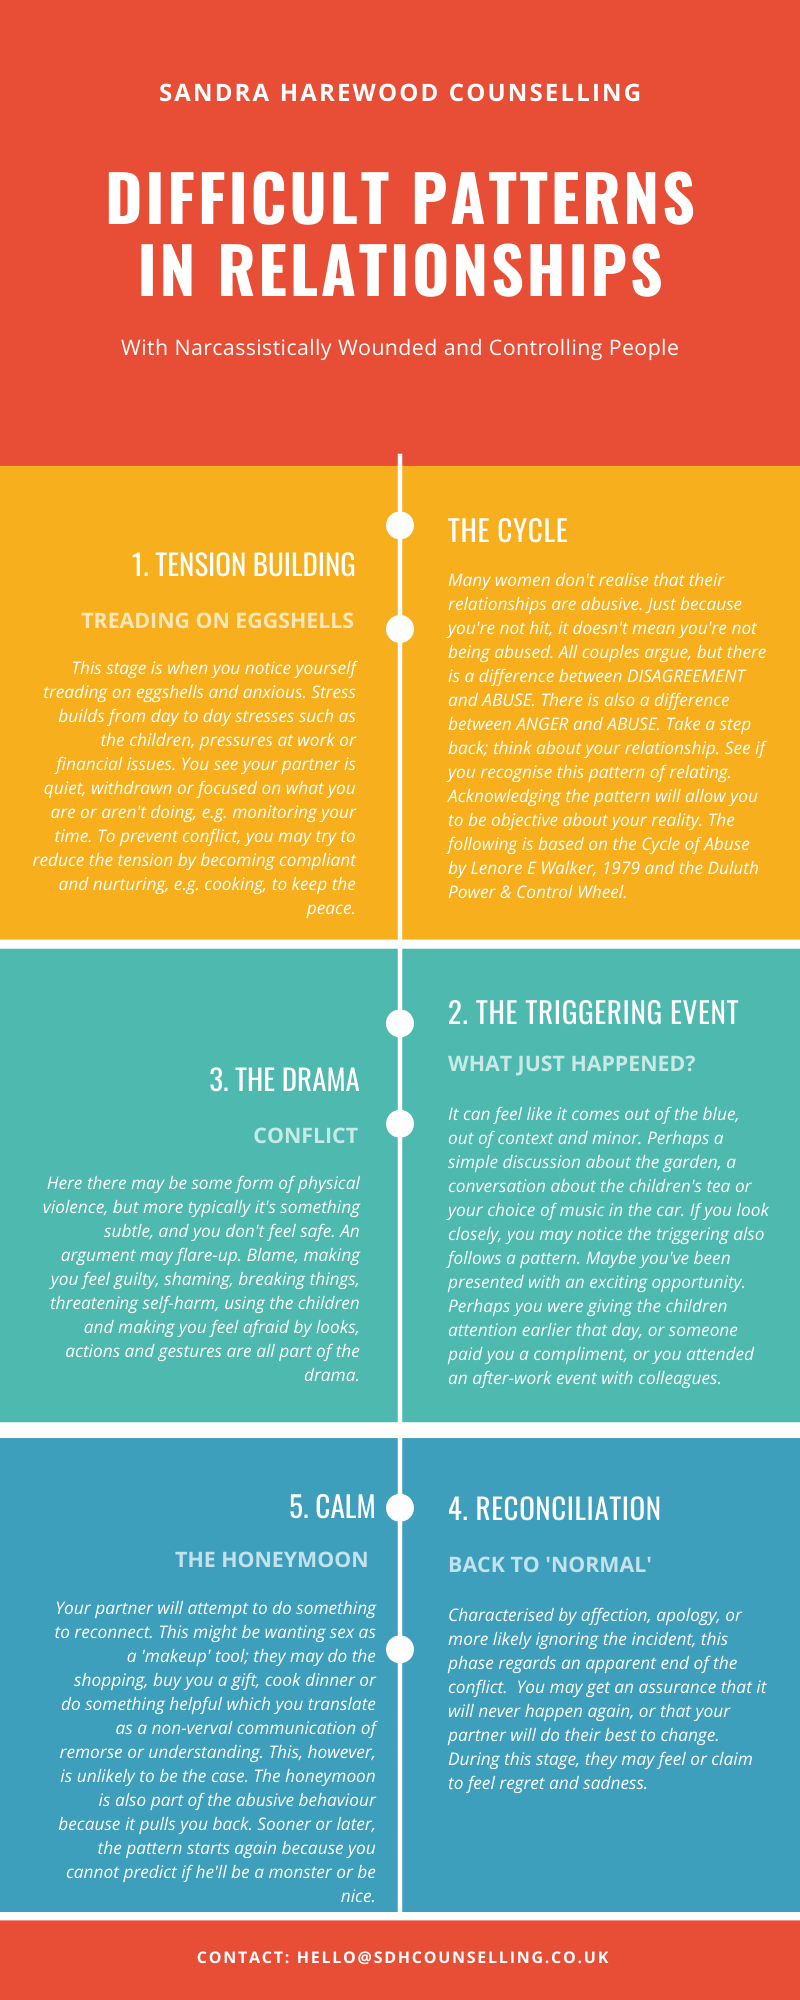 Infographic Describing The 5 Stages In The Cycle of Abuse -Walking On Eggshells? What You Should Know About Domestic Abuse - Sandra Harewood Counselling